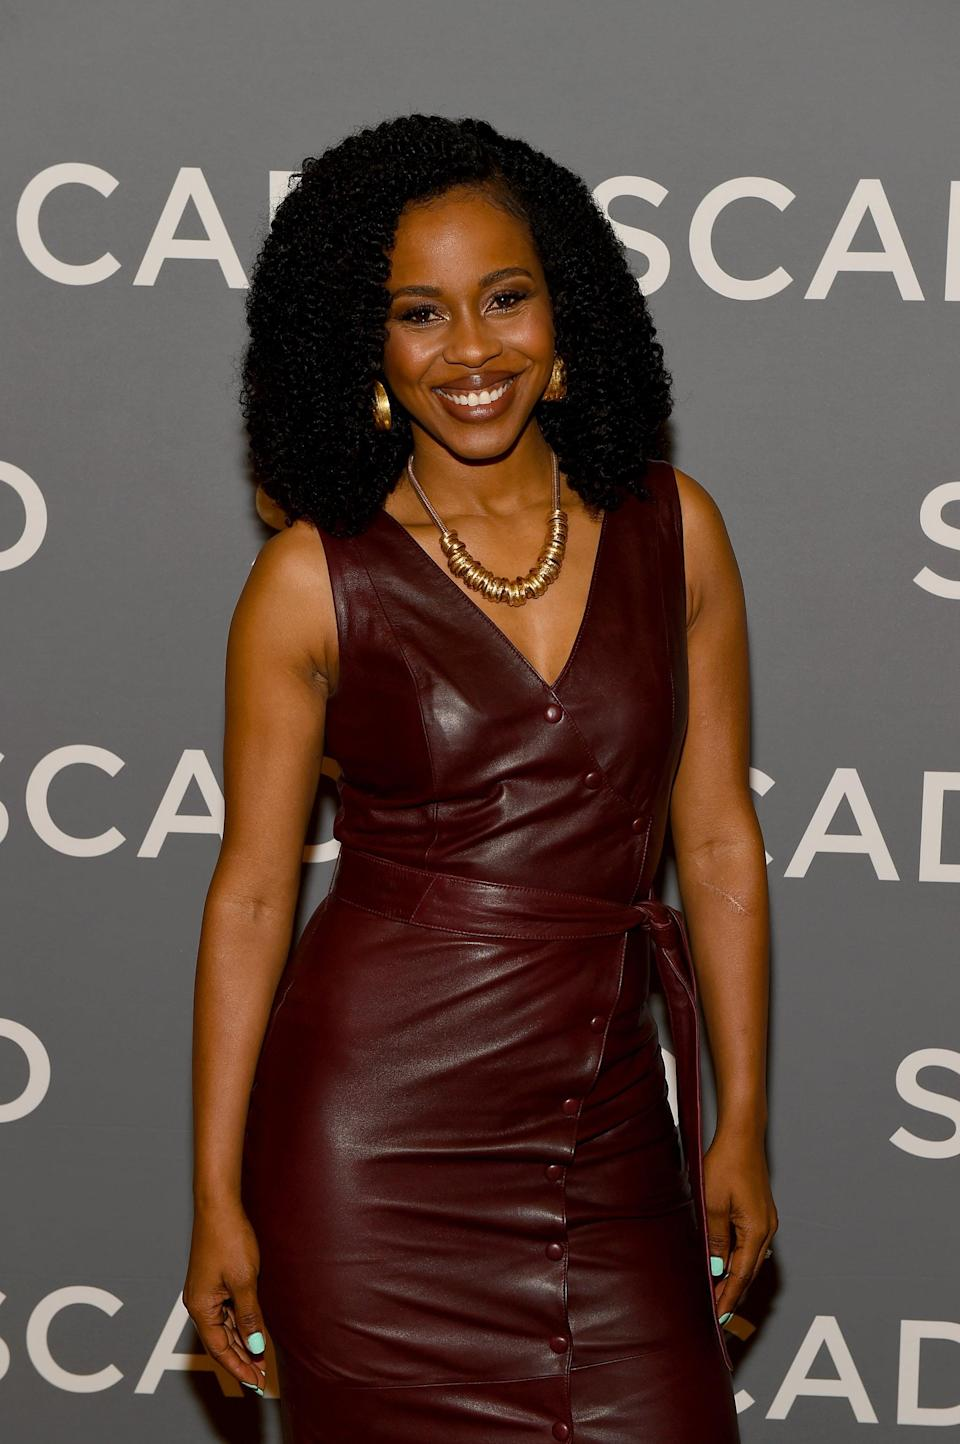 <p>We have yet to learn about Truitt's <b>Law &amp; Order: Organized Crime</b> character, but we do know the actor has extensive TV experience. She played the title character in BET's short-lived series <b>Rebel</b> and was a regular on the Fox drama <b>Deputy</b>.</p>